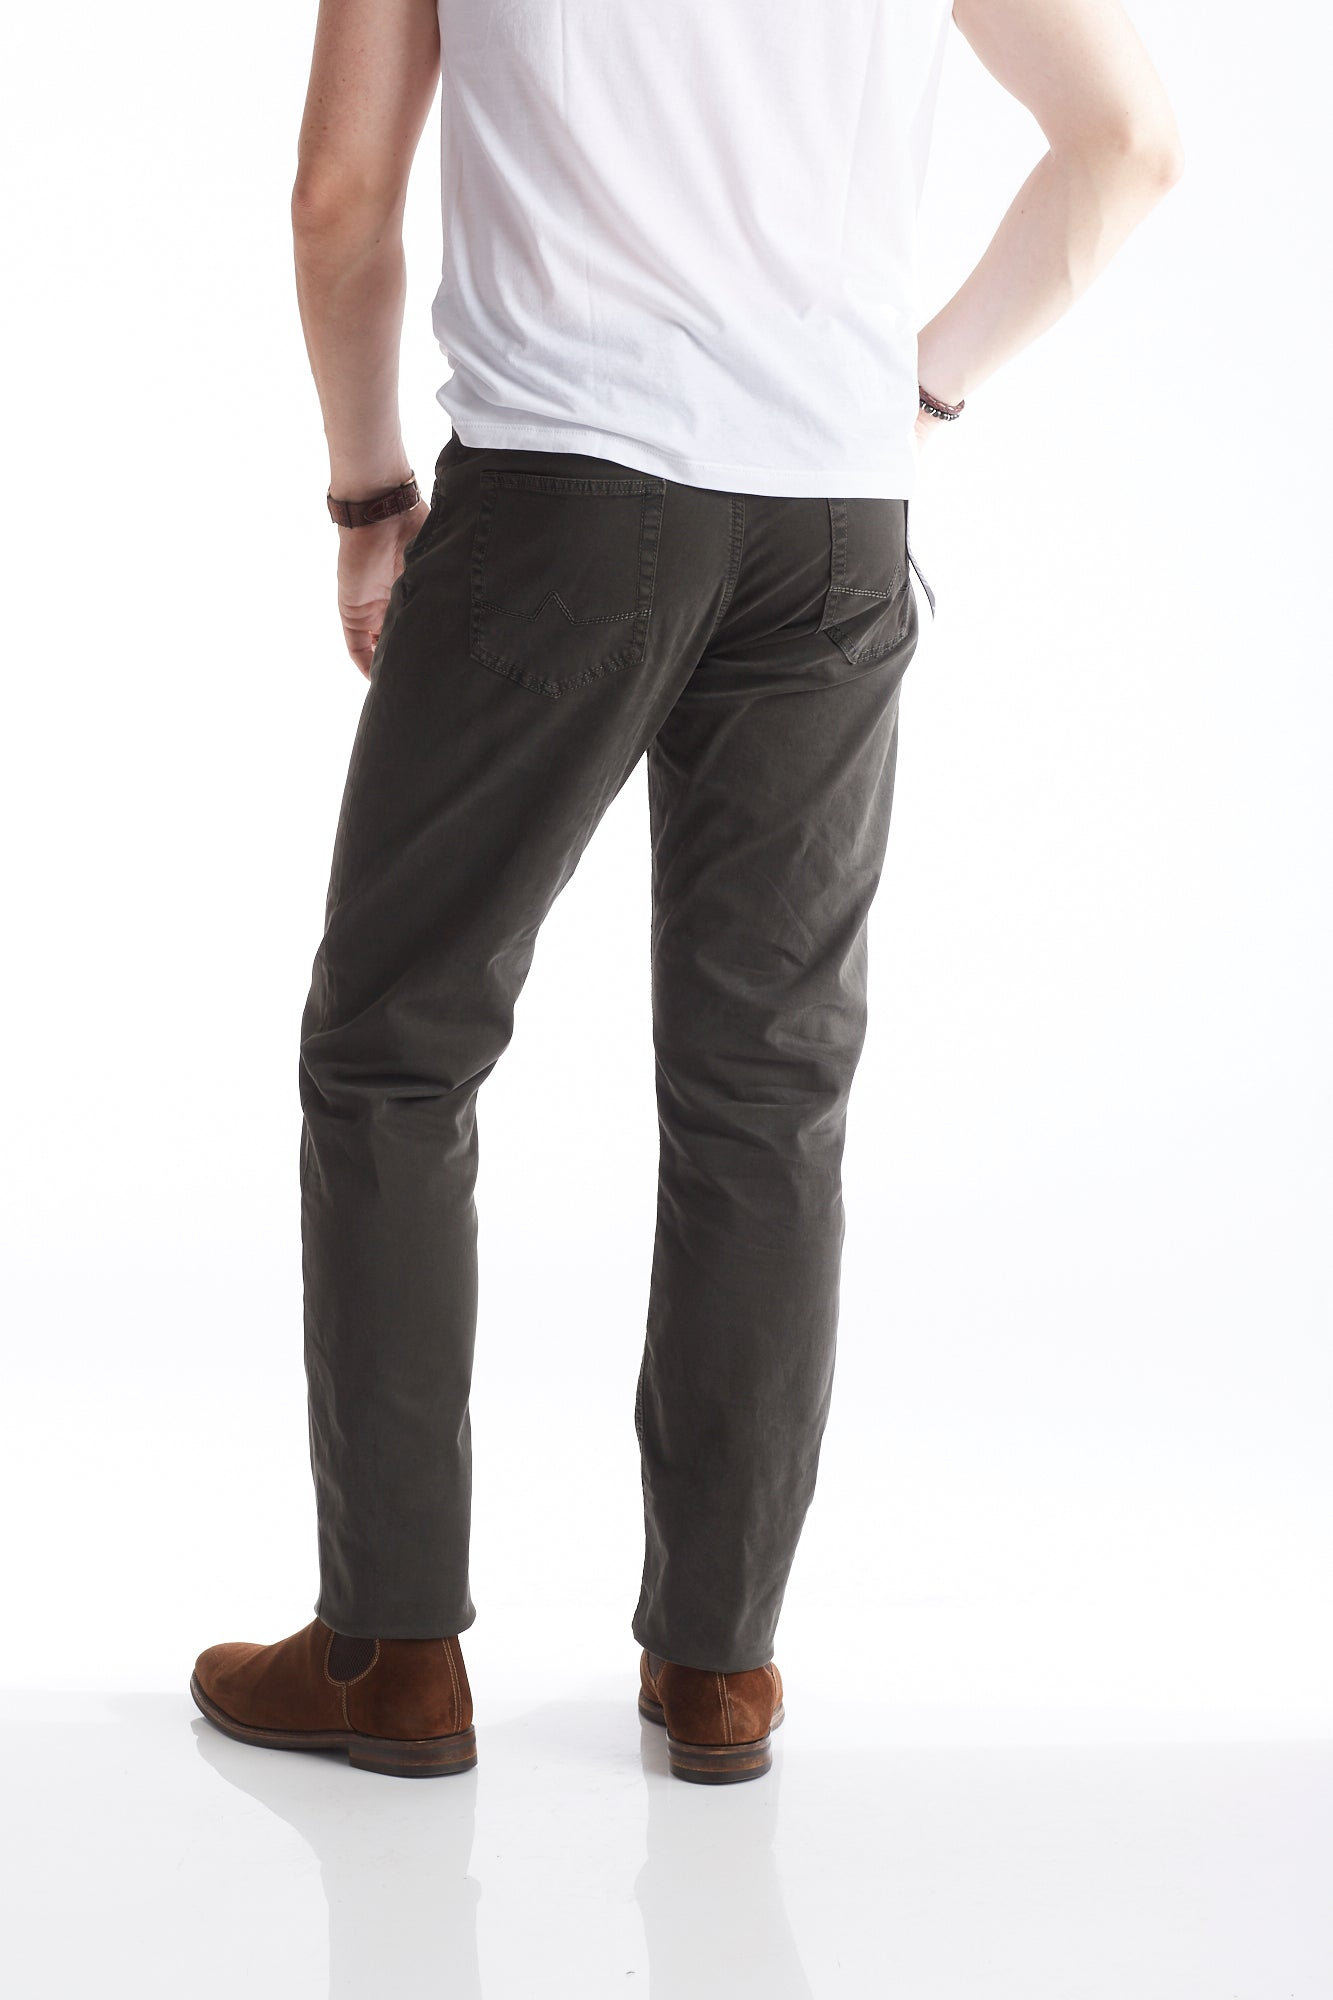 Alberto Moss Green 5-Pocket Chino